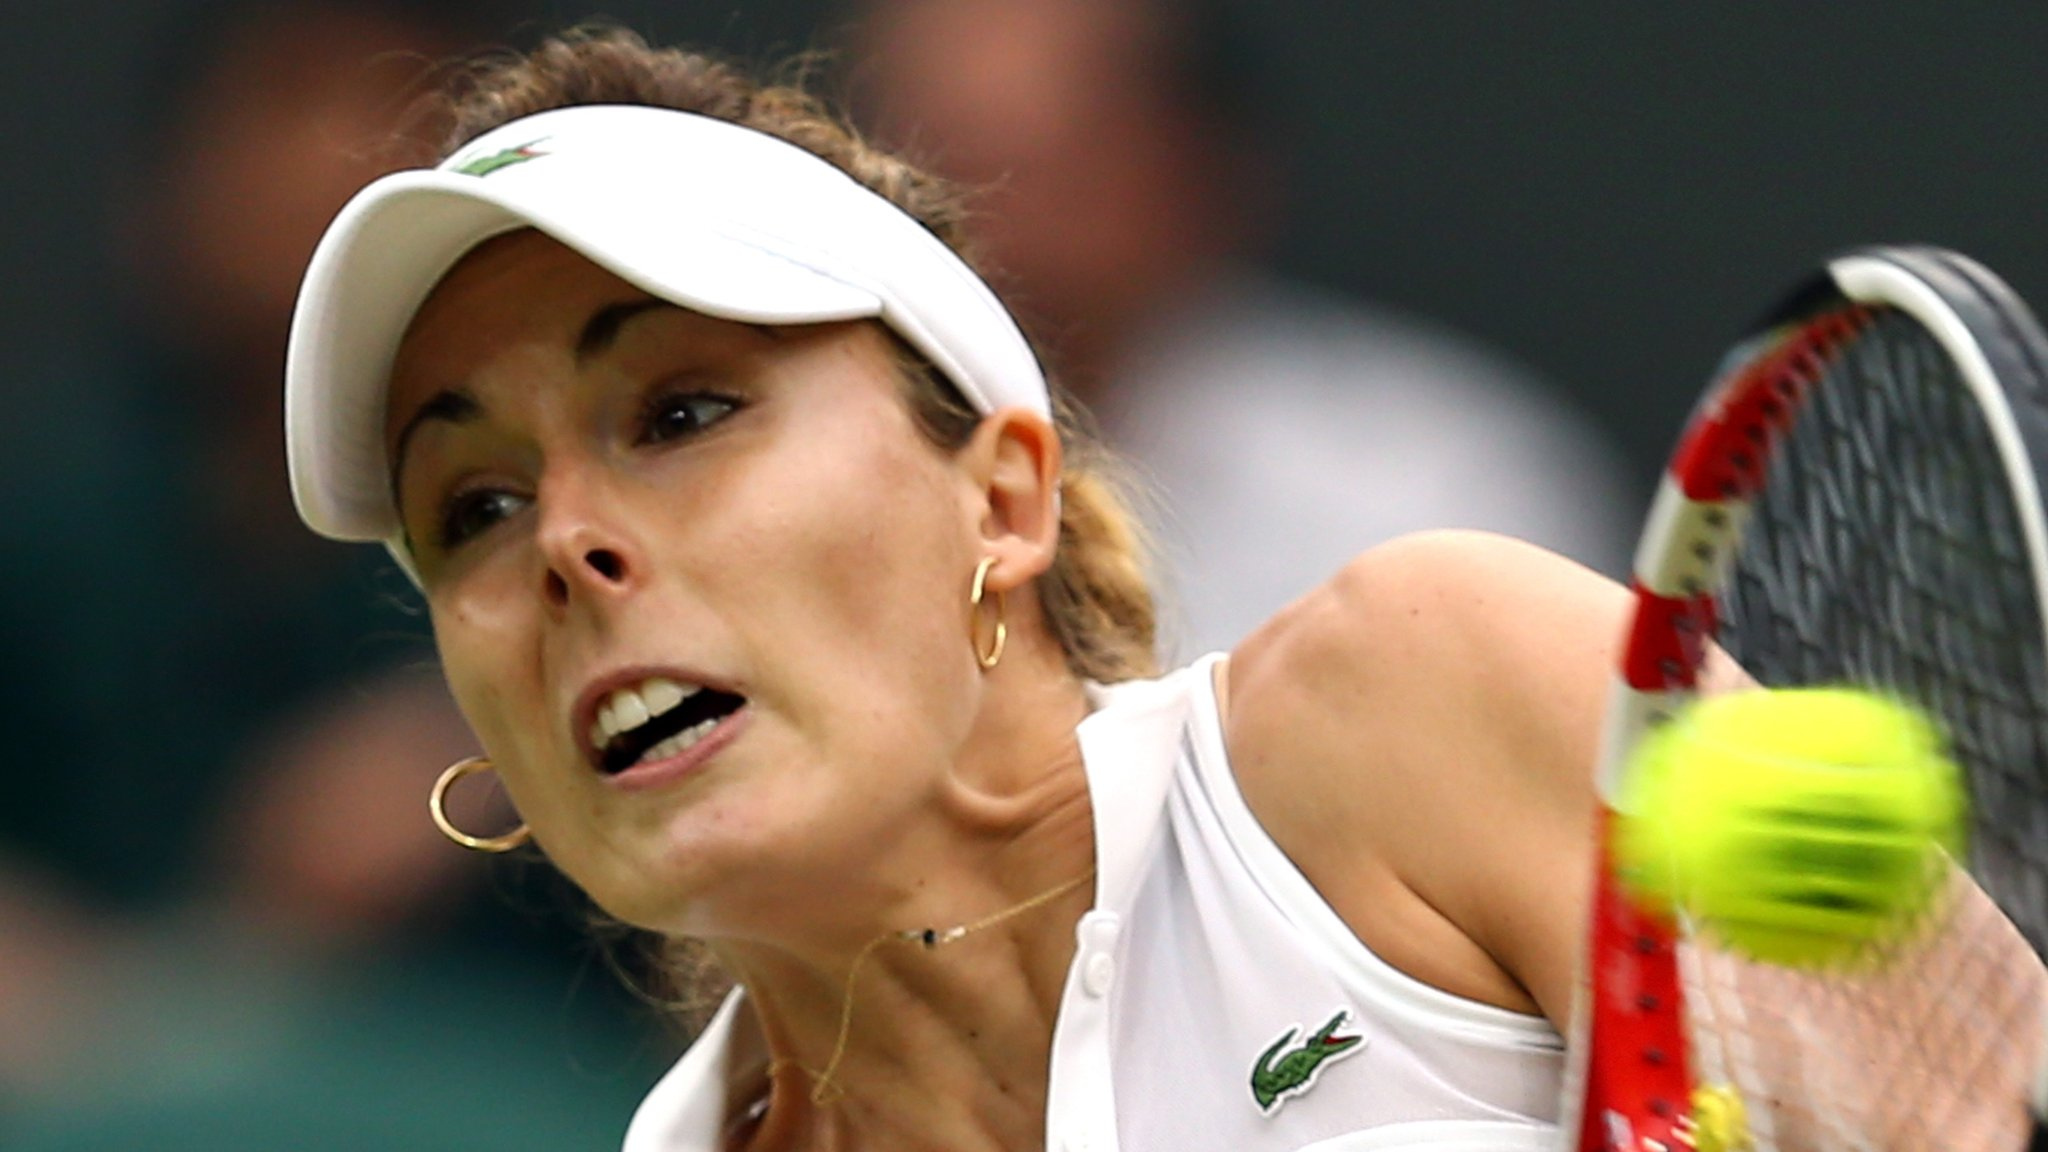 France's Cornet avoids potential ban for 'missing drugs test'